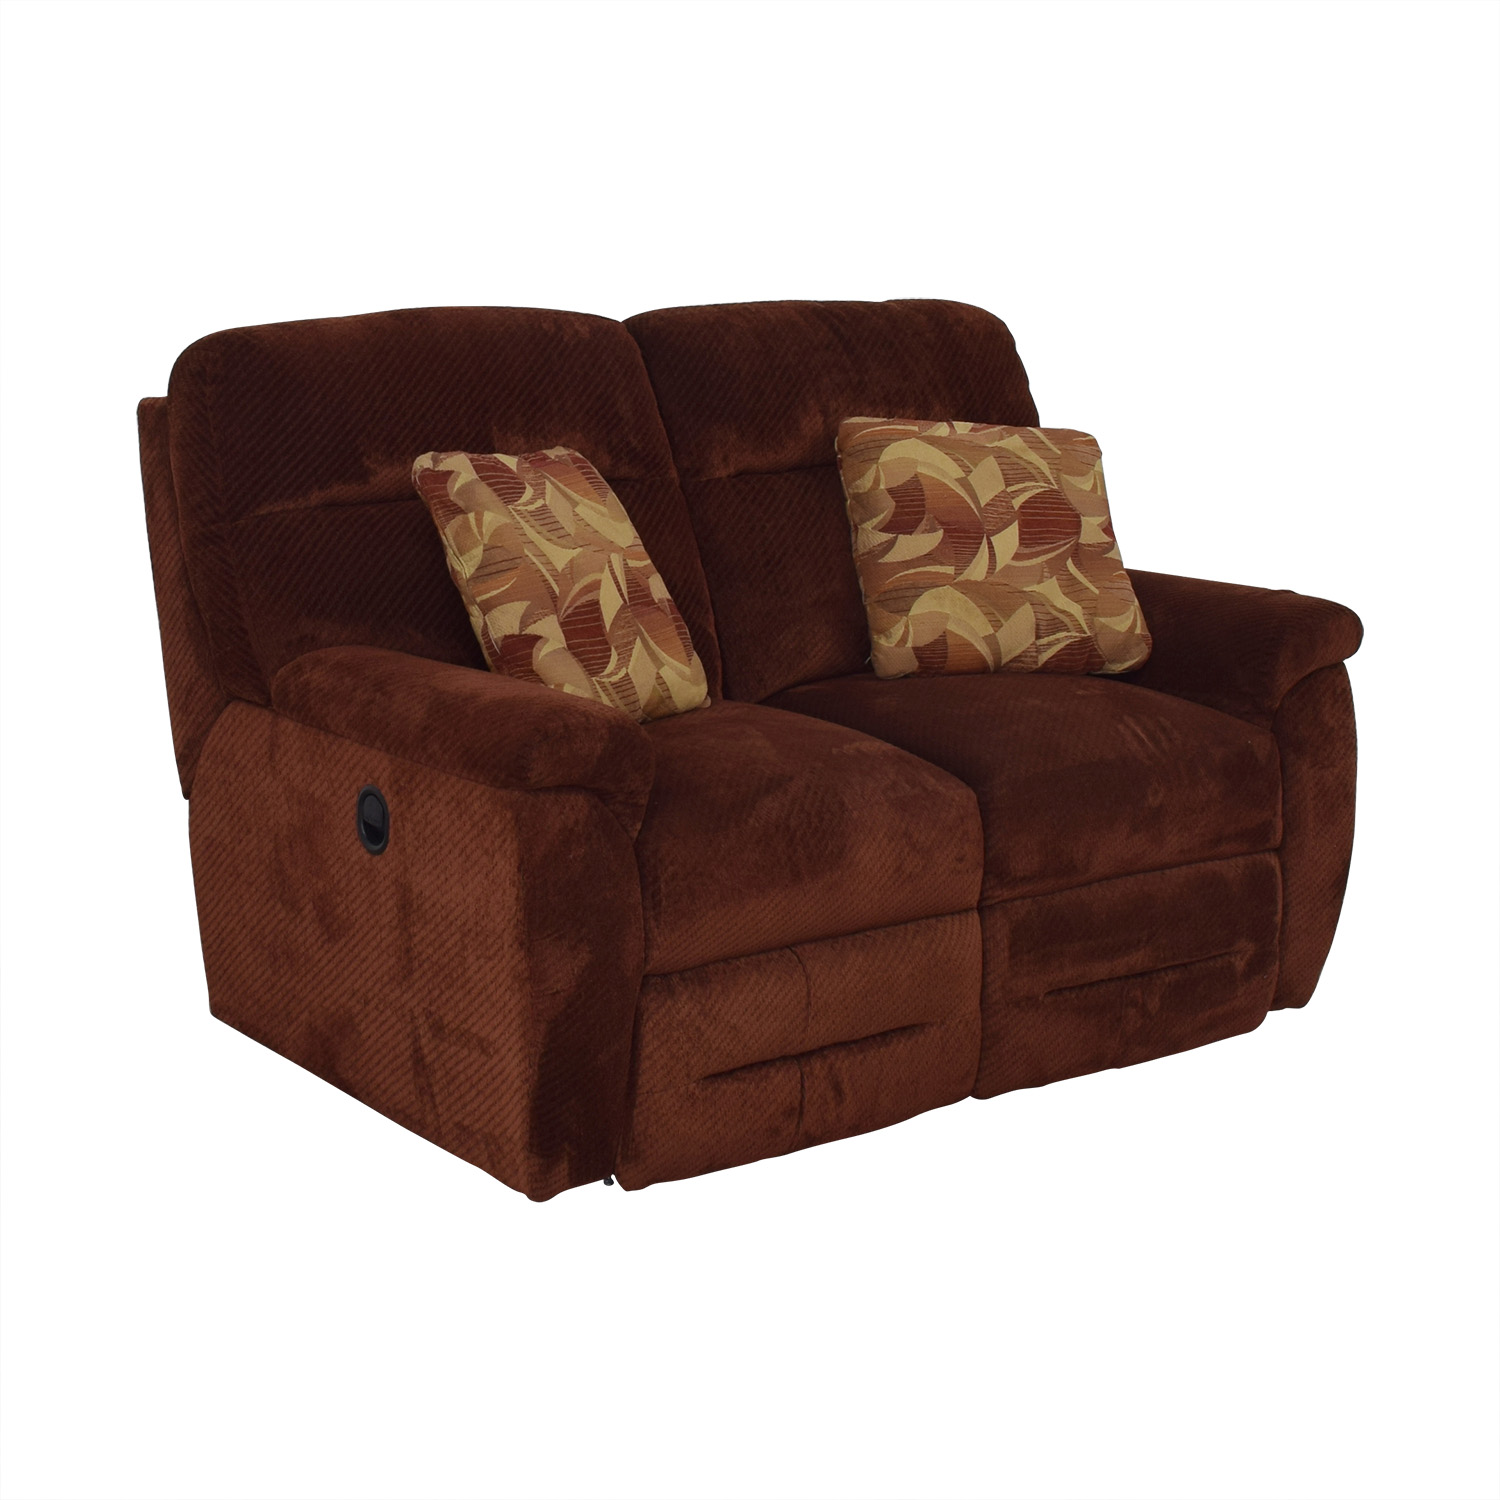 La-Z-Boy La-Z-Boy Reclining Love Seat on sale